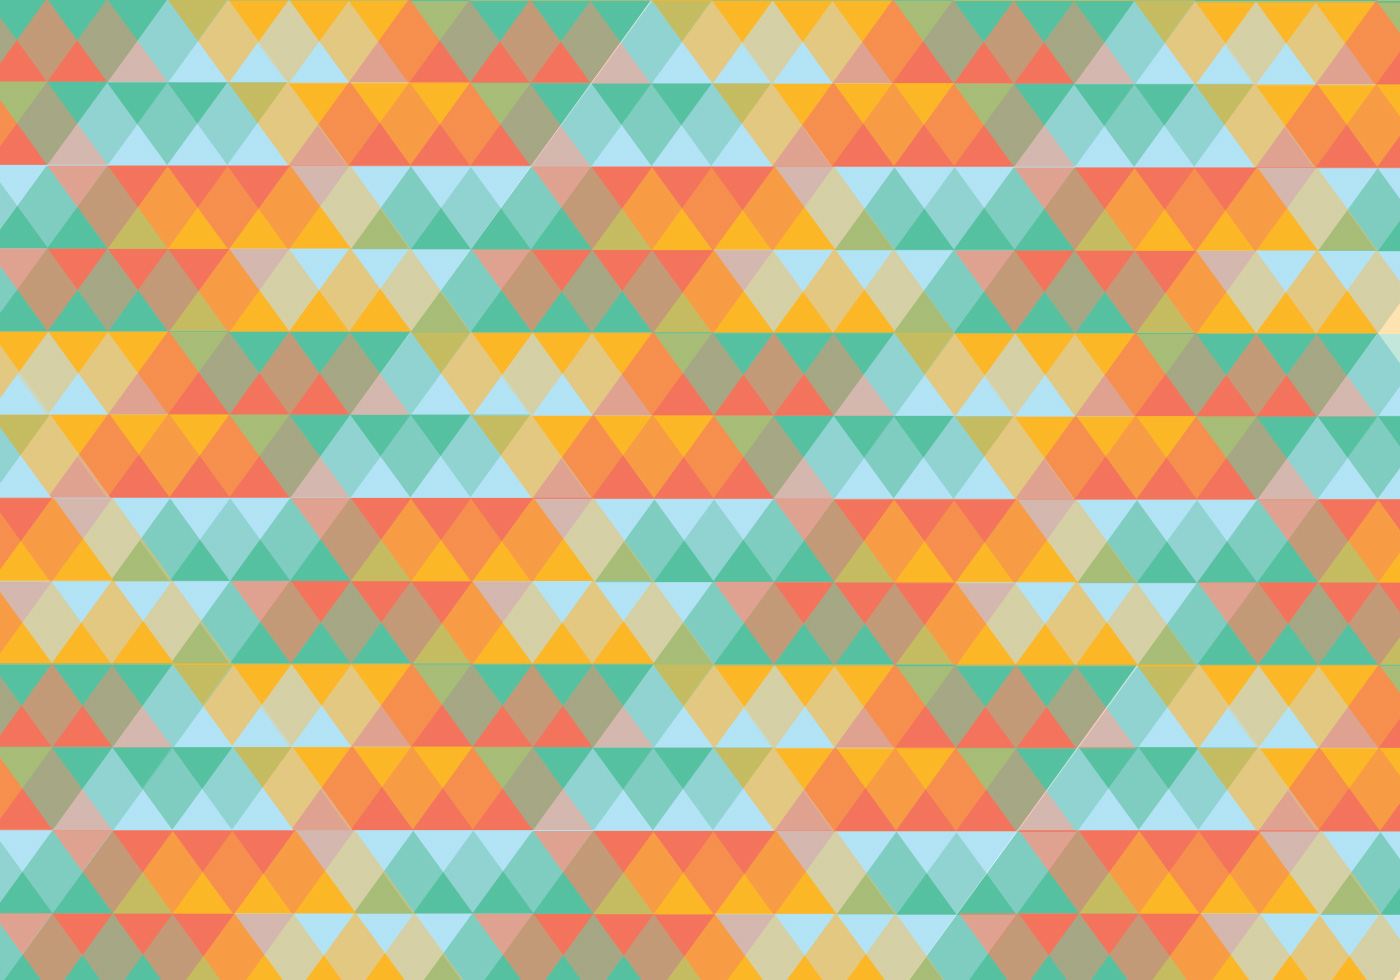 Abstract triangle geometric pattern background - Download ...